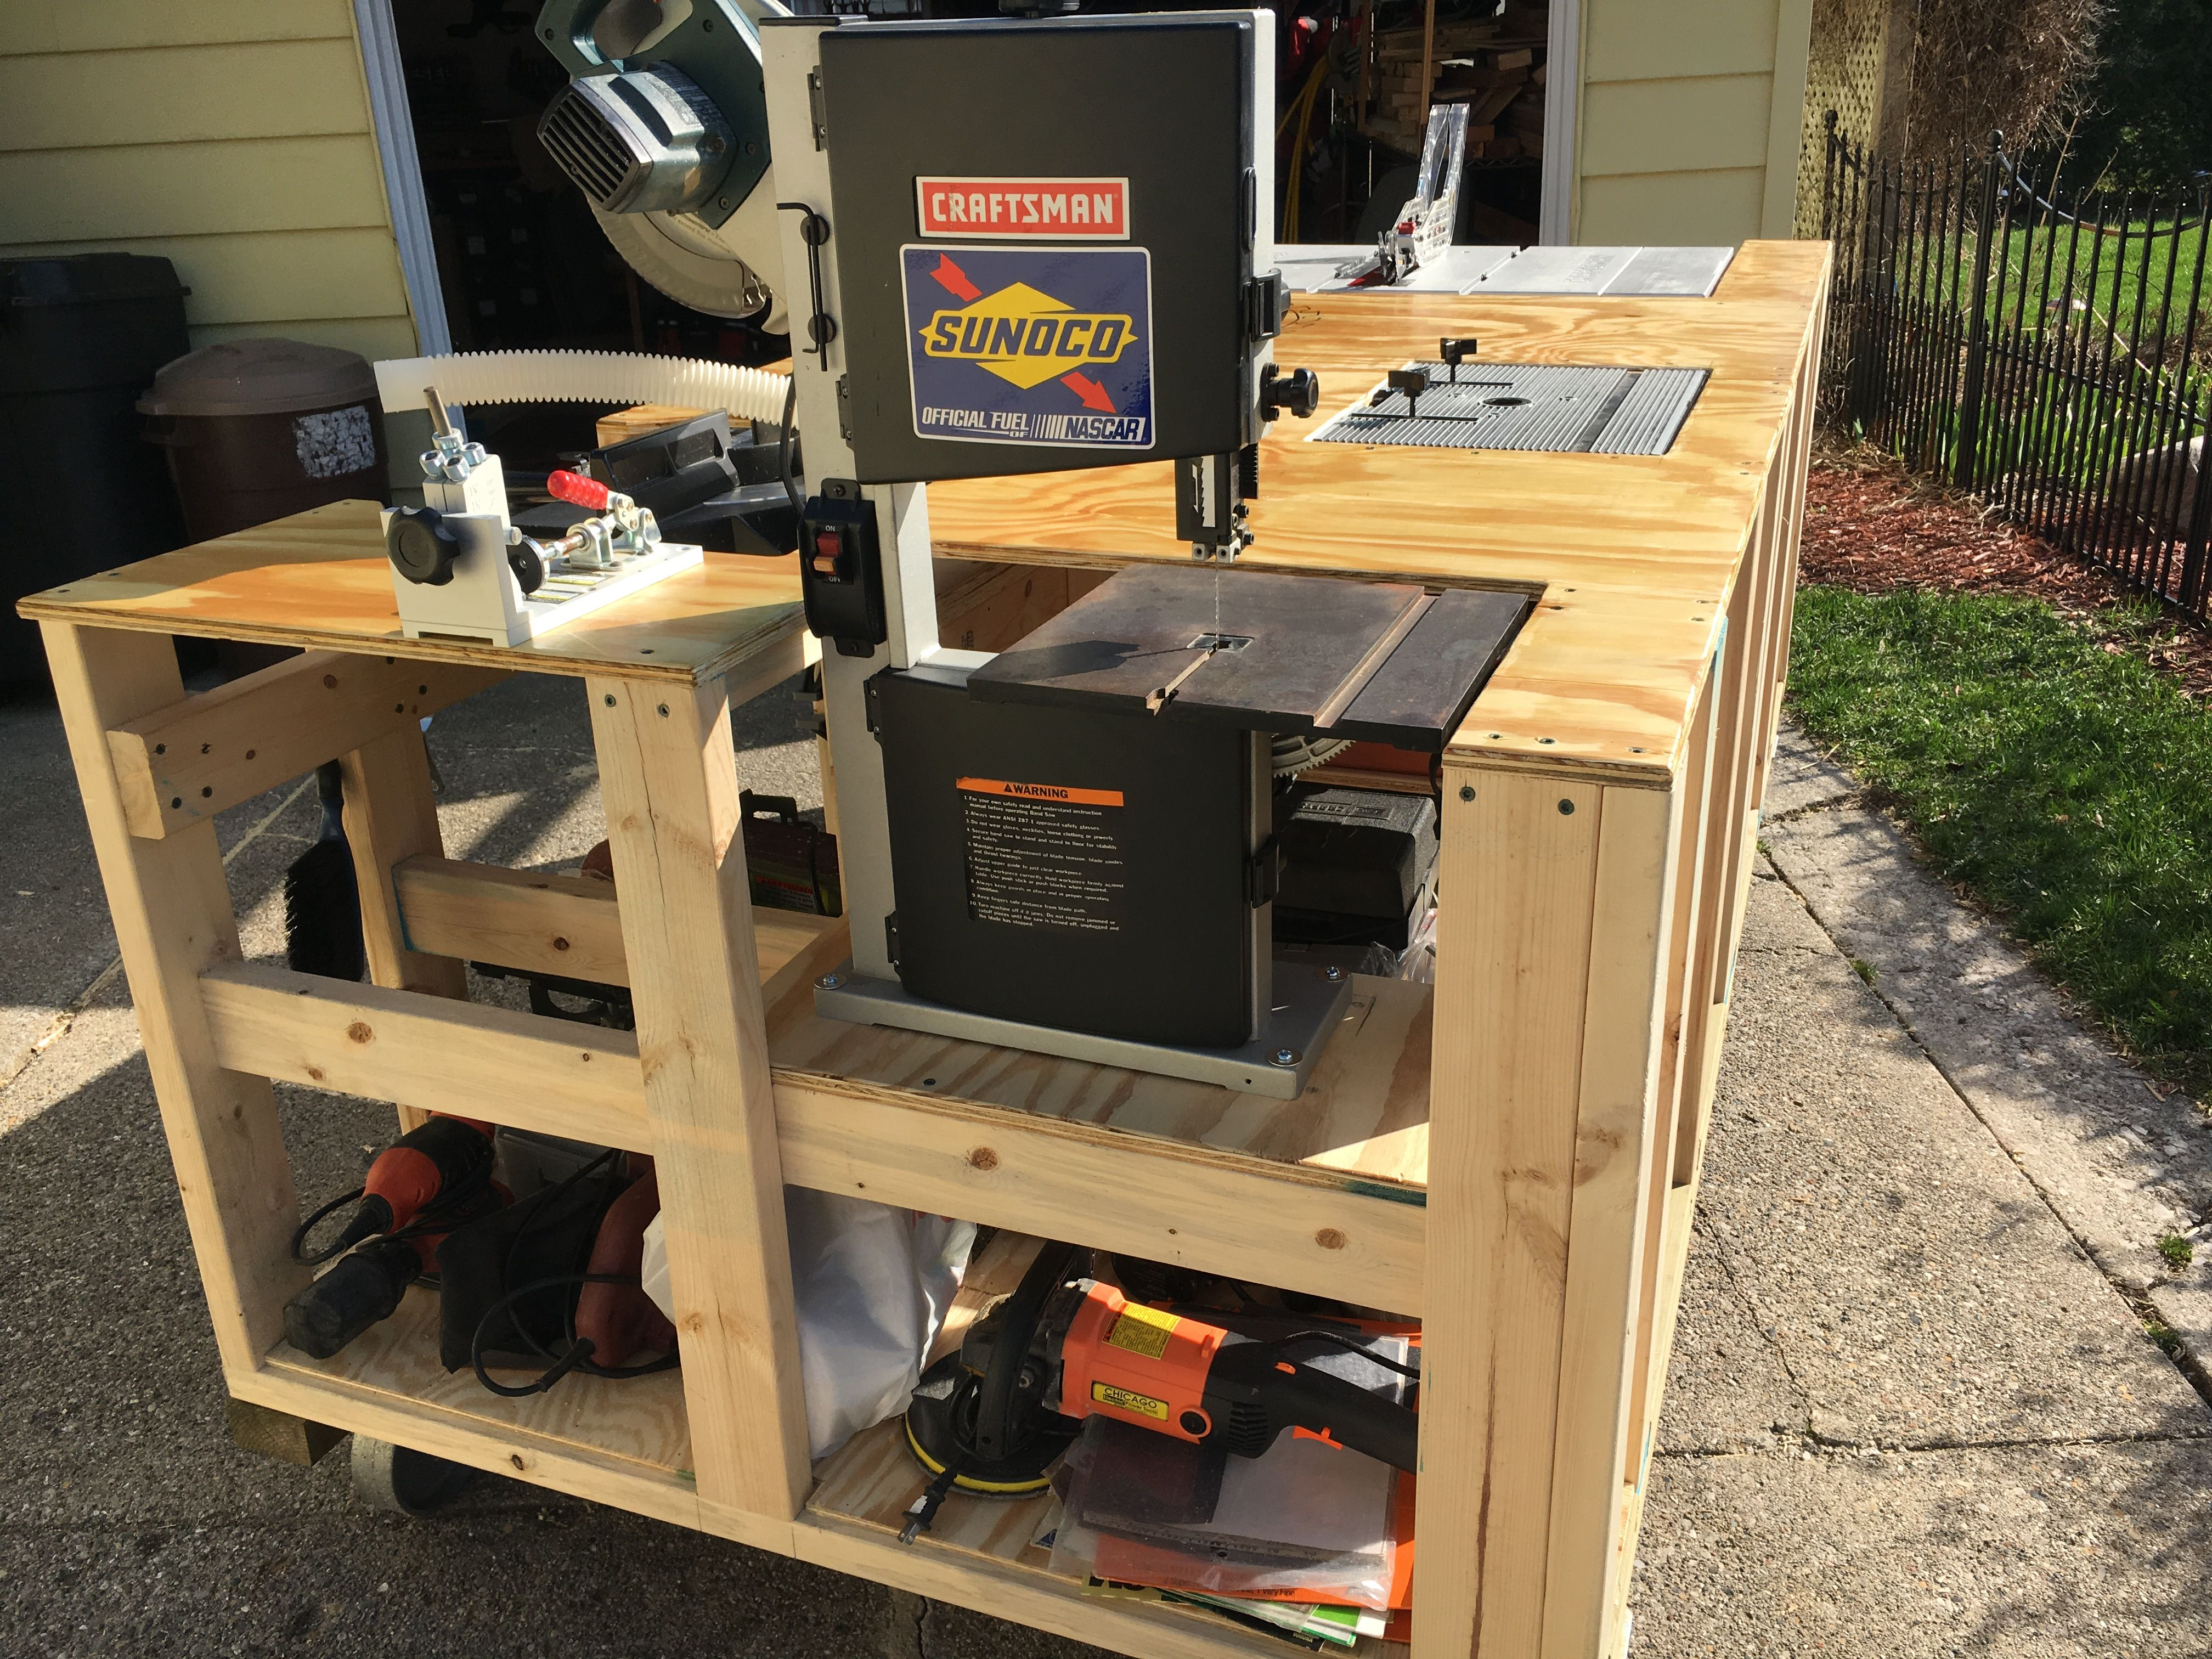 Mega Ultimate Workbench I Wanted To Save Space In My Garage By Making 1 Bench To Replace 6 Separate Tables T Workbench Best Woodworking Tools Garage Remodel